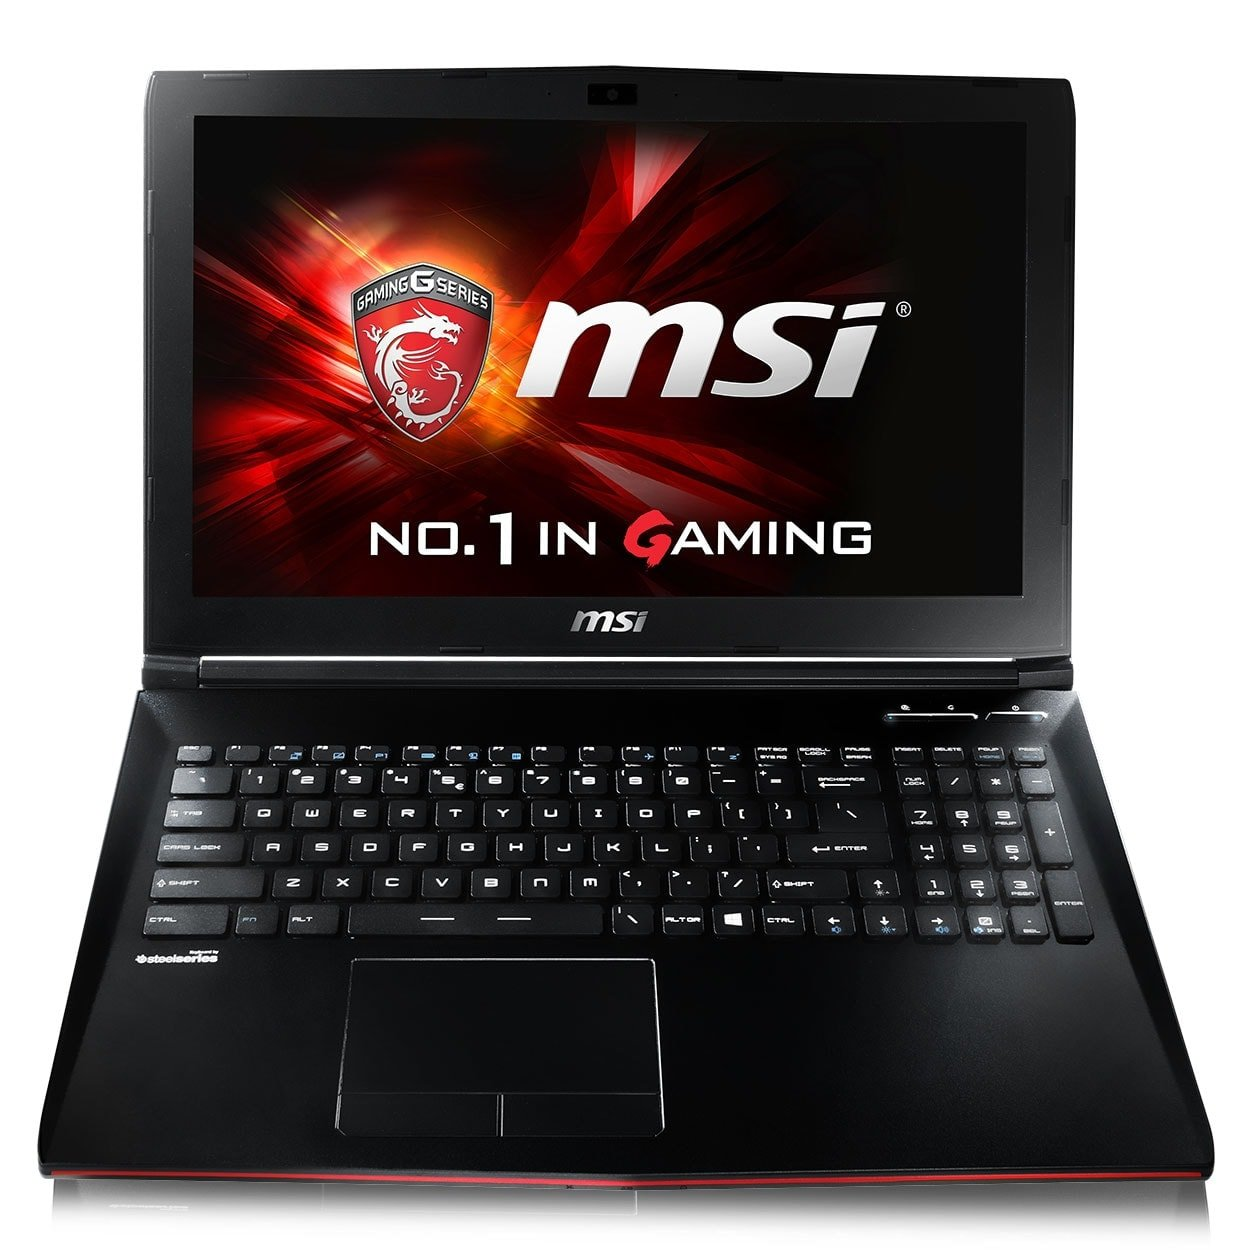 MSI 9S7-16J522-608 - PC portable MSI - Cybertek.fr - 2